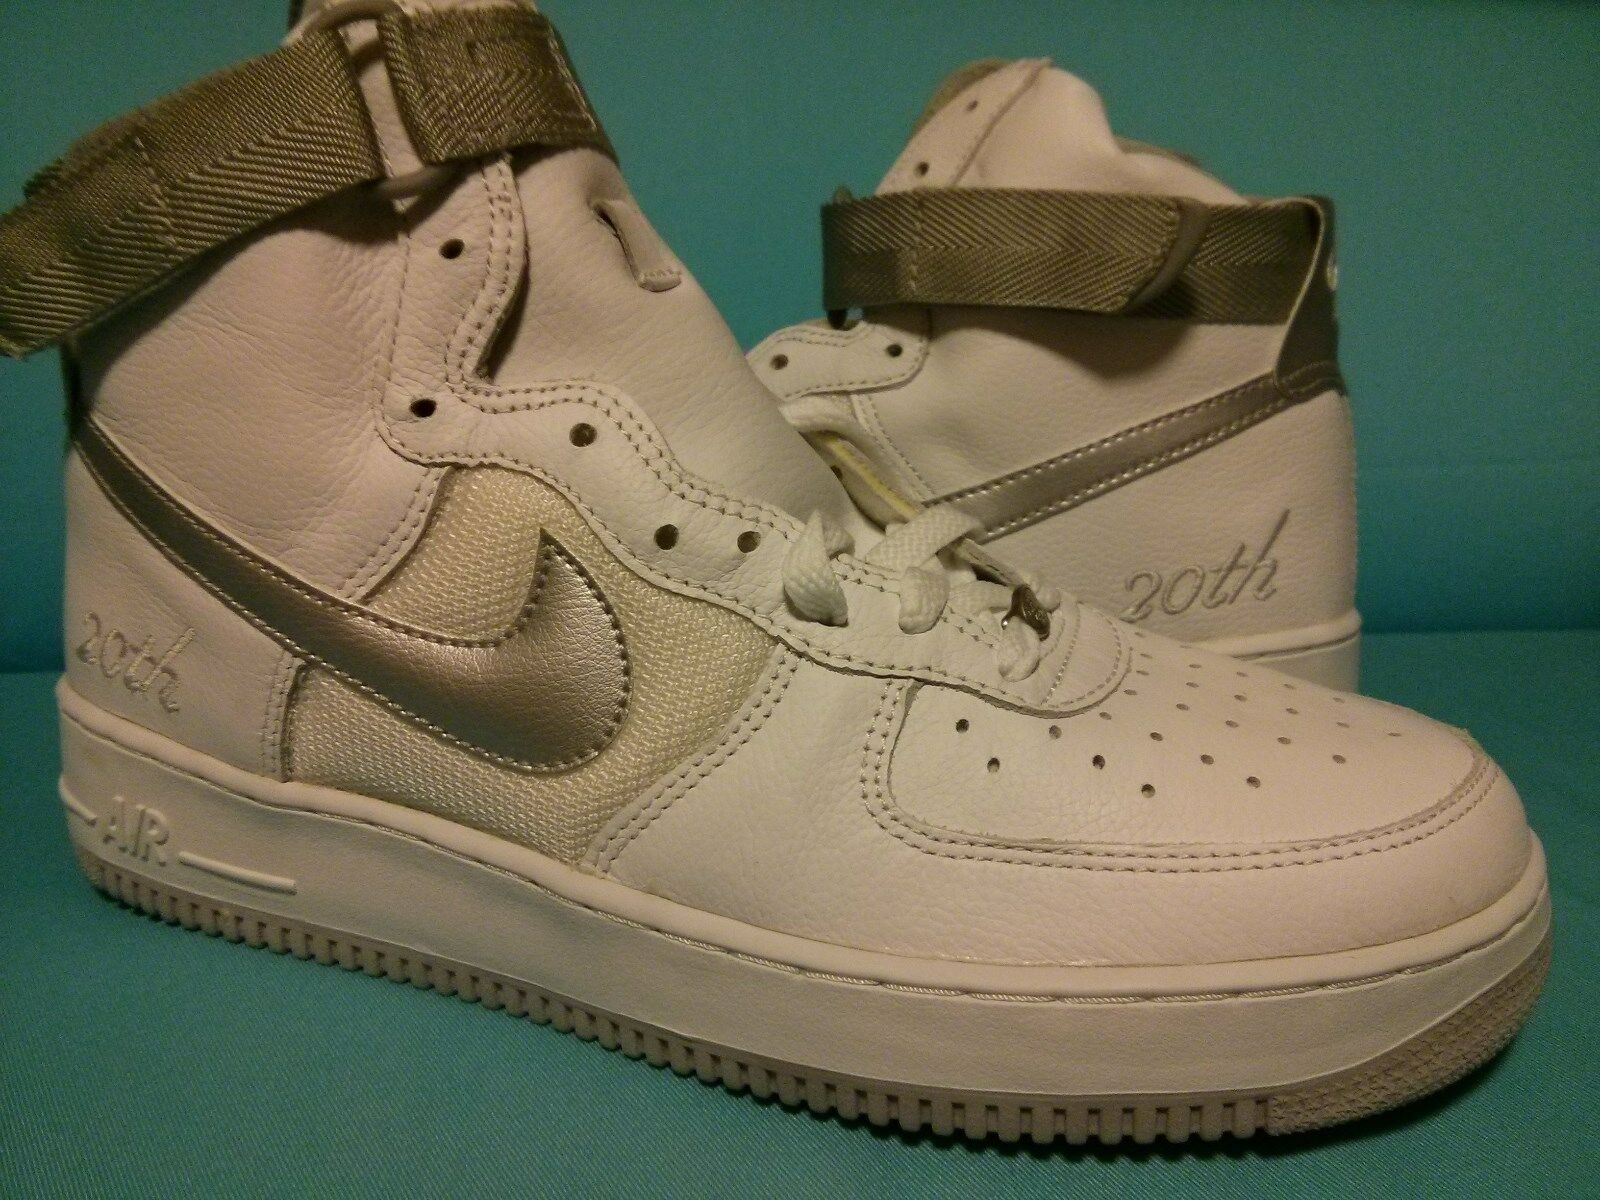 Price reduction DS 2018 NIKE AIR FORCE 1 HI L/M 302347-102 20th Anniversary Price reduction Wild casual shoes